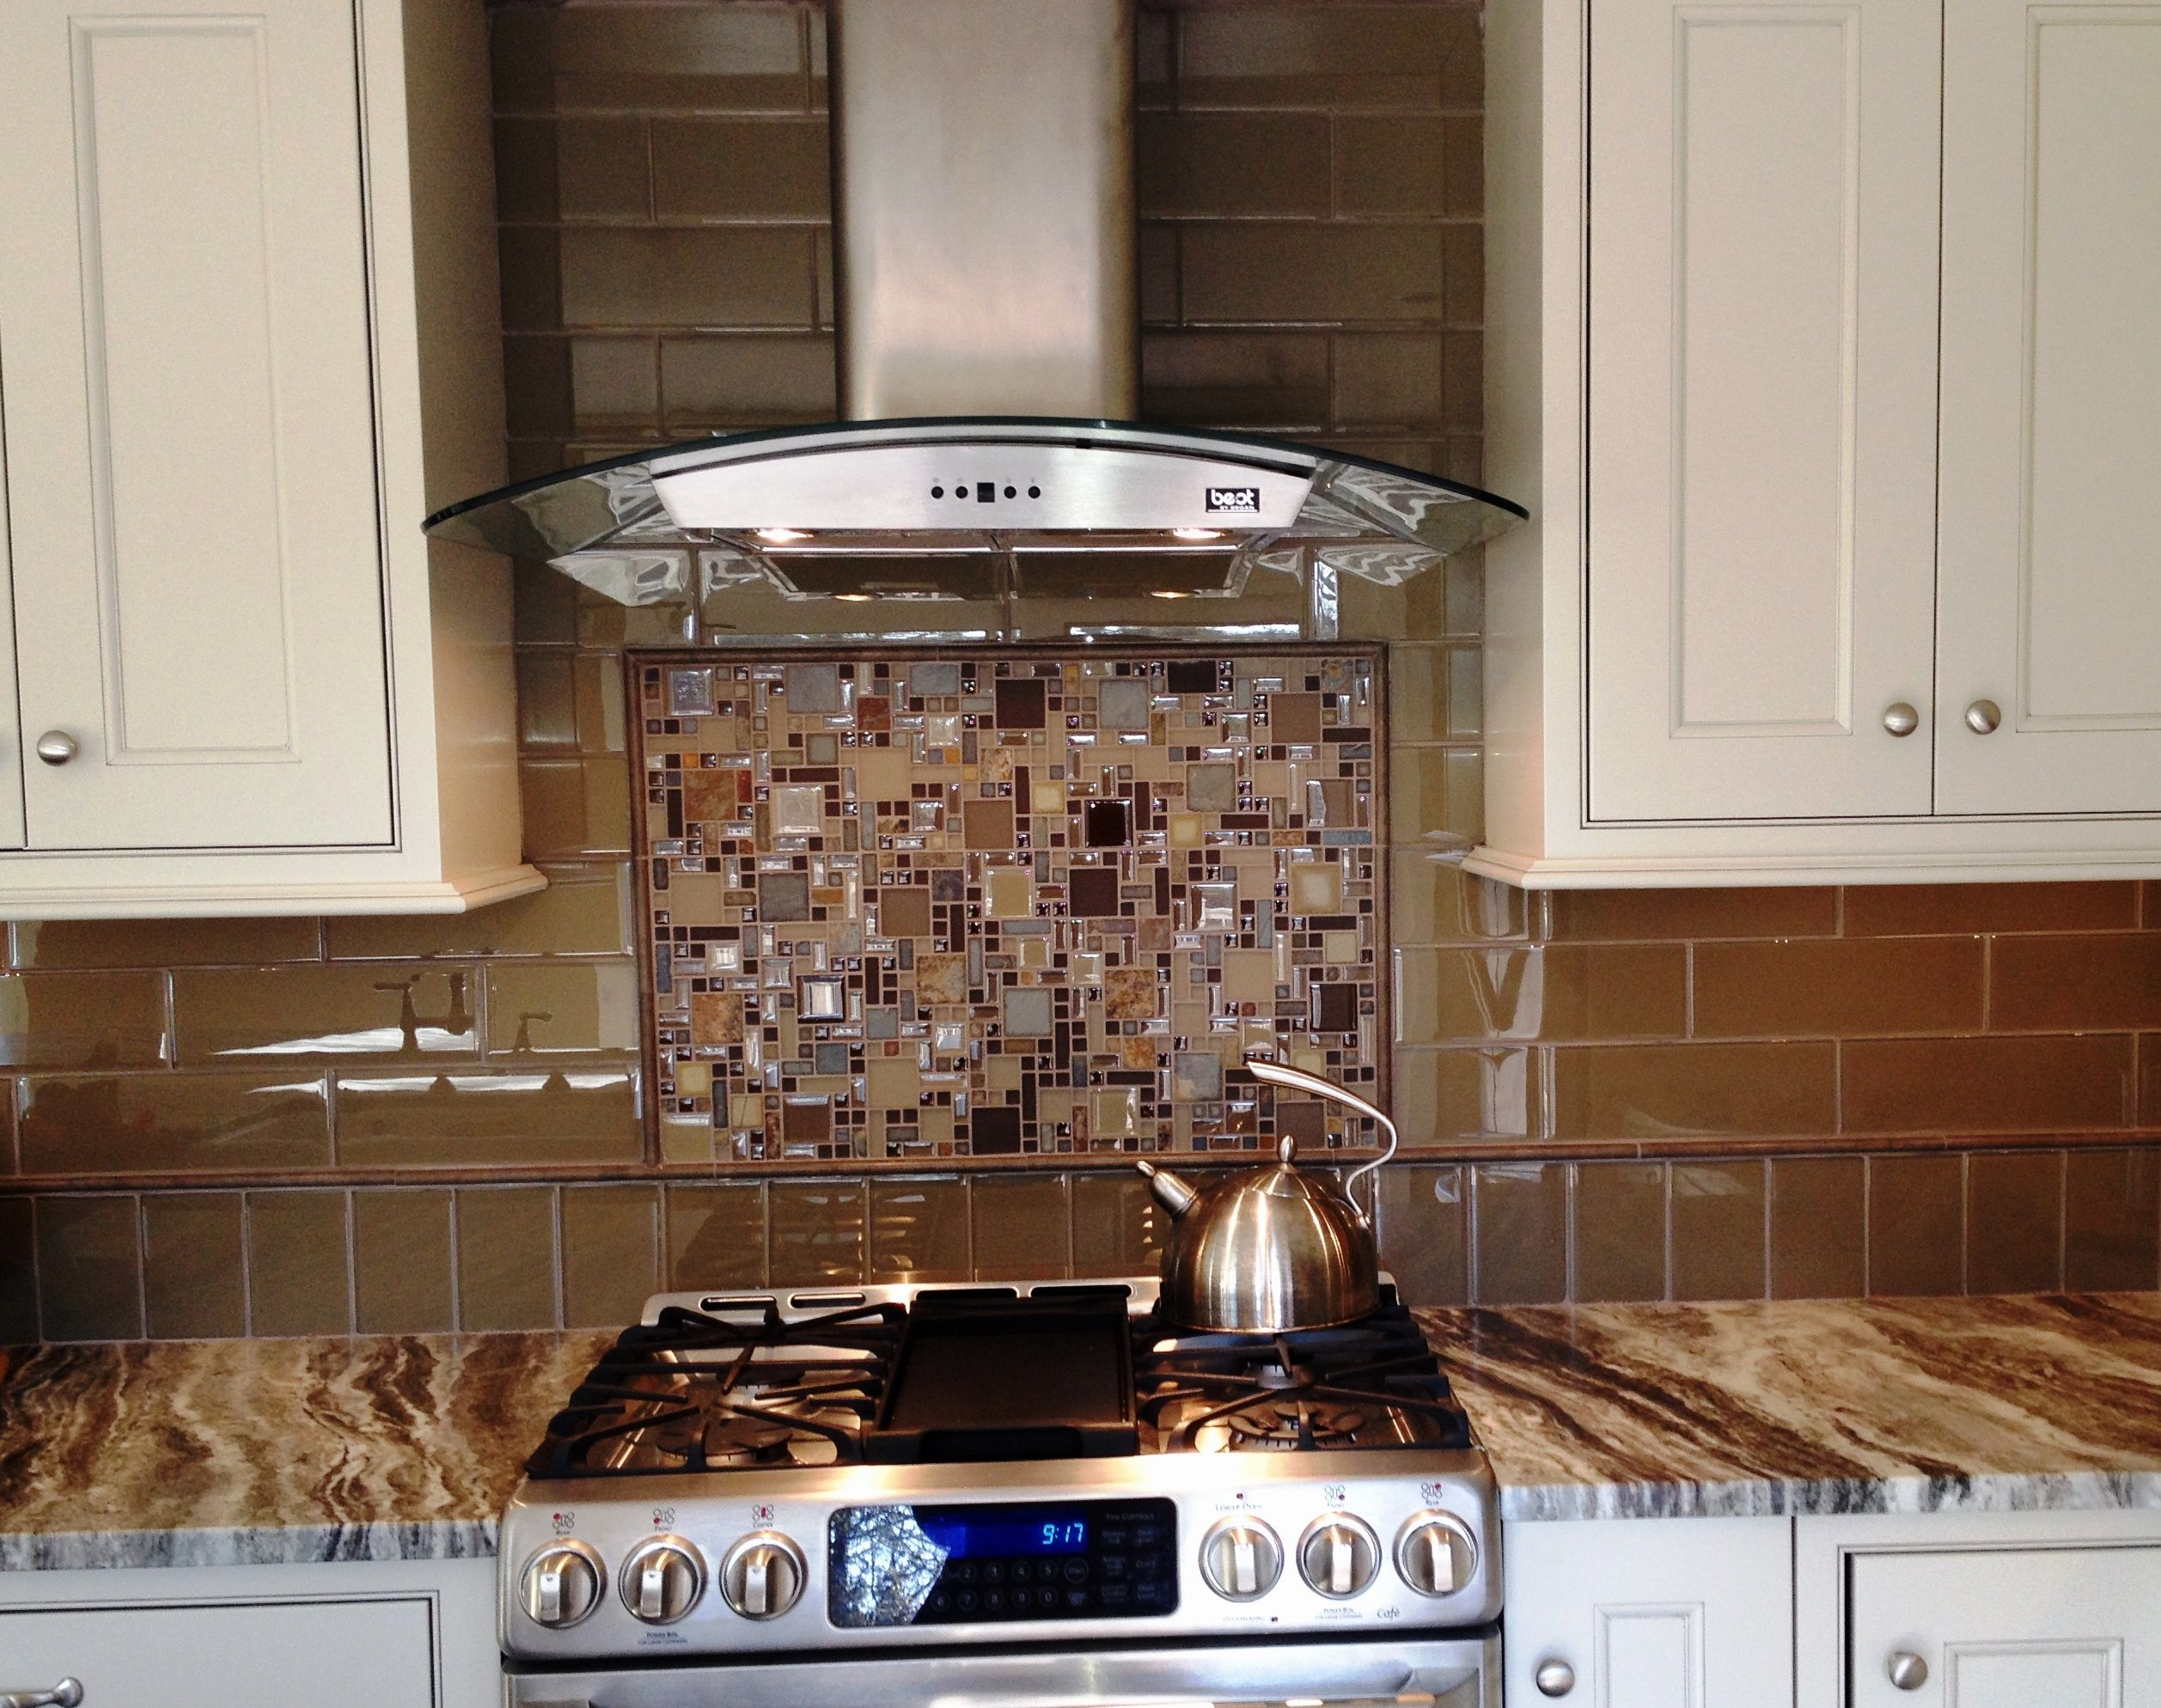 glass tile backsplash with framed mosaic tile insert over the glass tile backsplash with framed mosaic tile insert over the stove kitchen by stoneshop from cherry hill nj